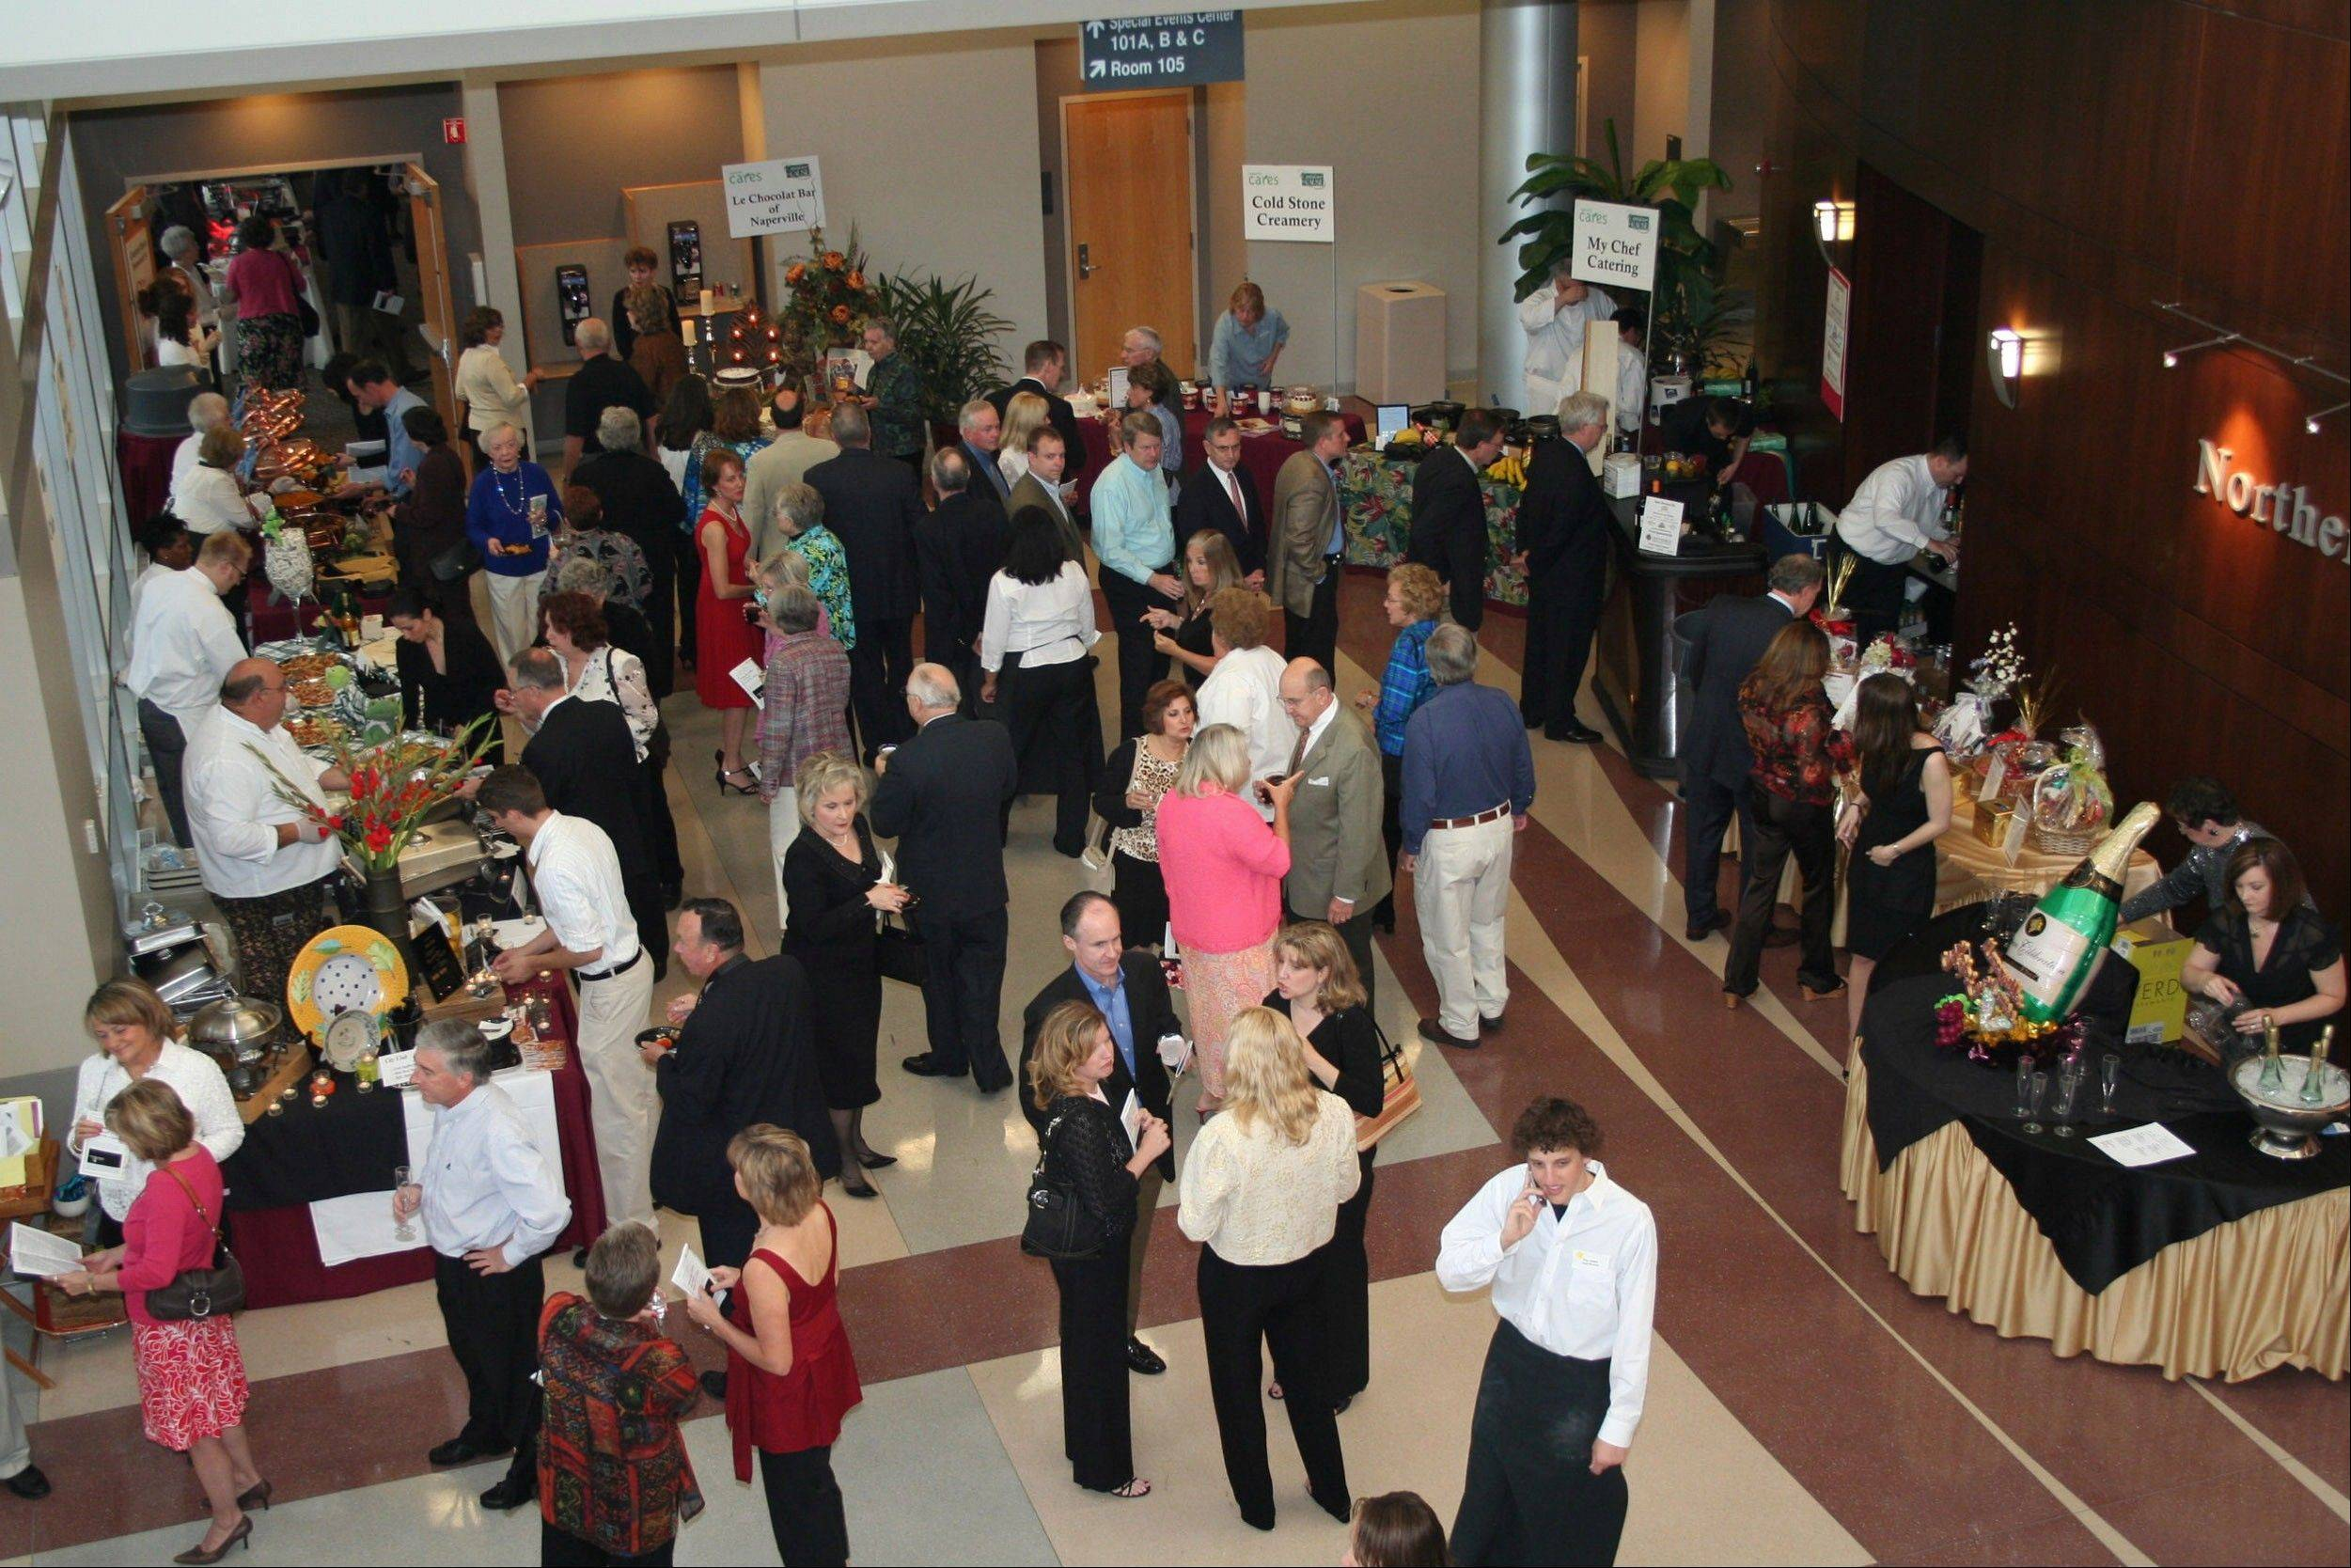 Naperville CARES' Cuisine for a Cause features samples of food from 25 area restaurants. Proceeds support the organization's emergency aid for people in financial crisis.